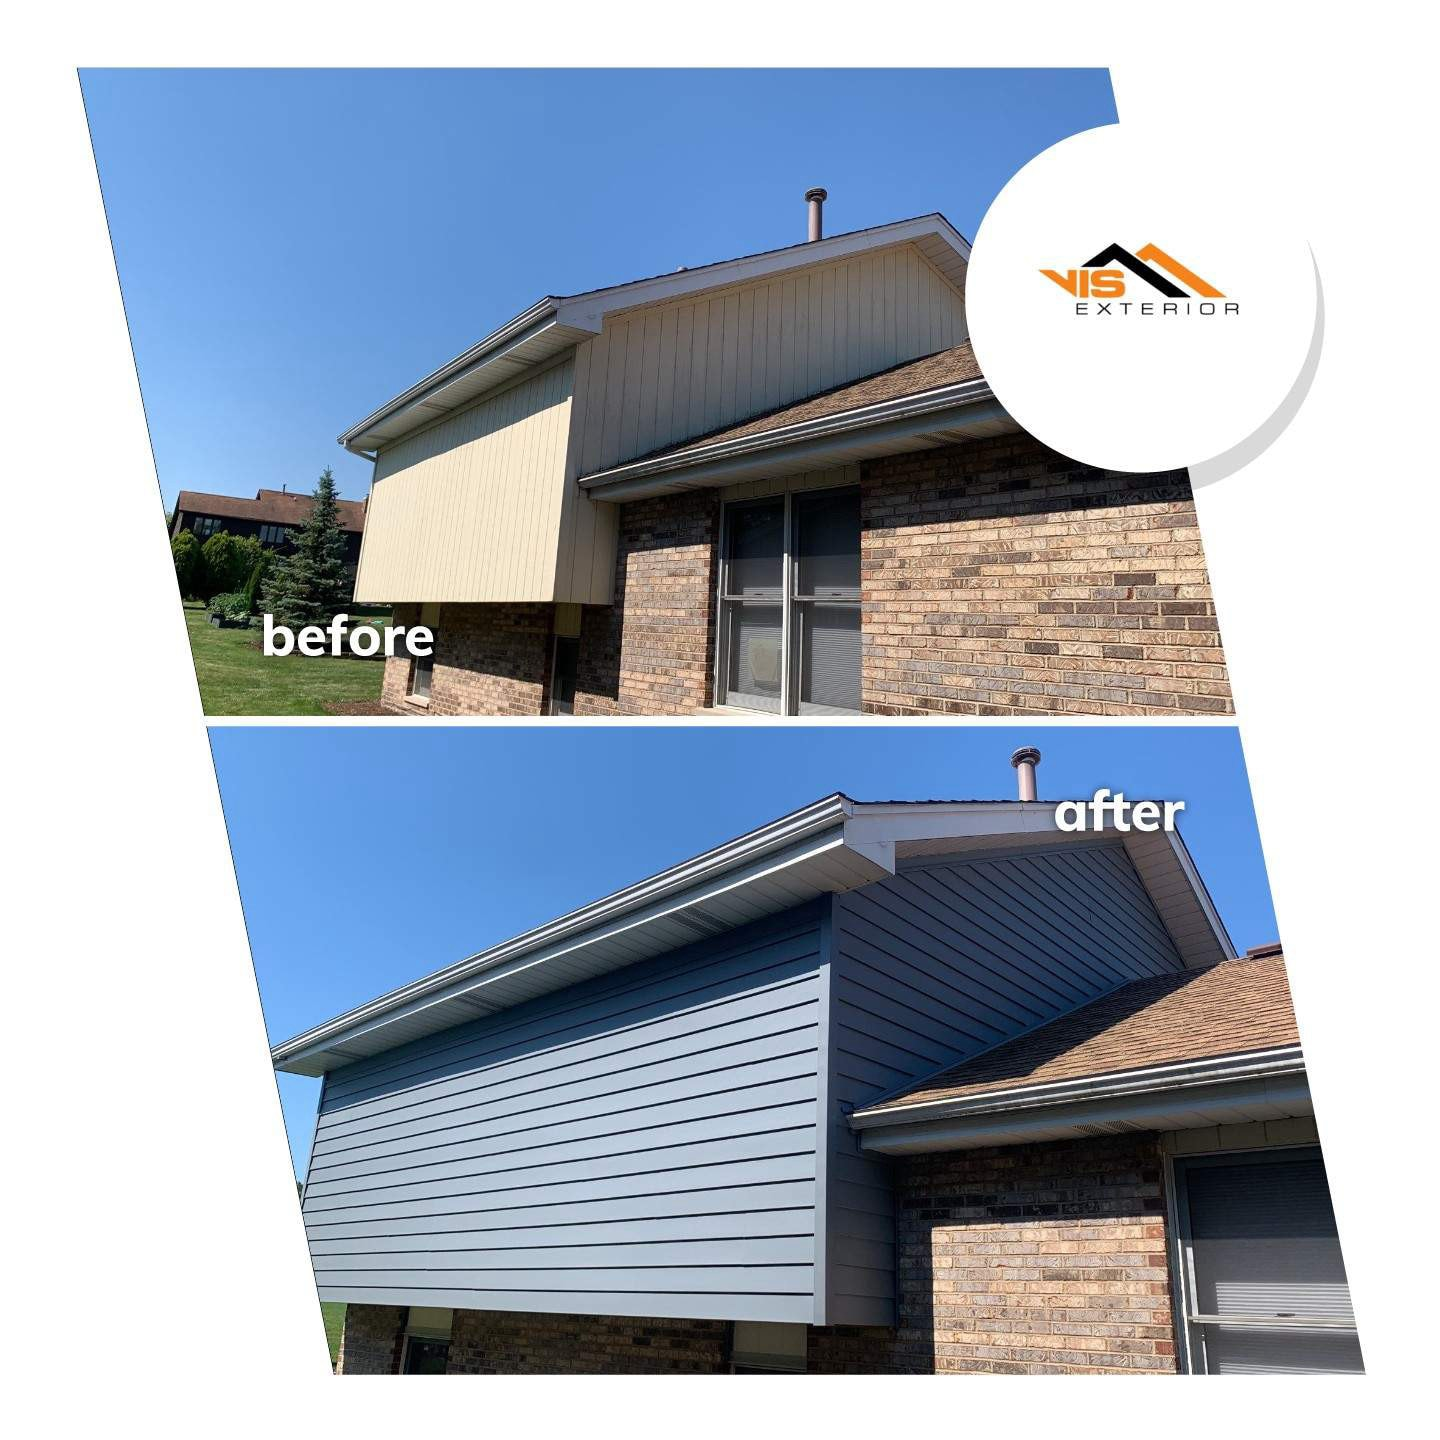 Royal vinyl Insulated & Shake and Shingles siding installation in Lemont before after project photo